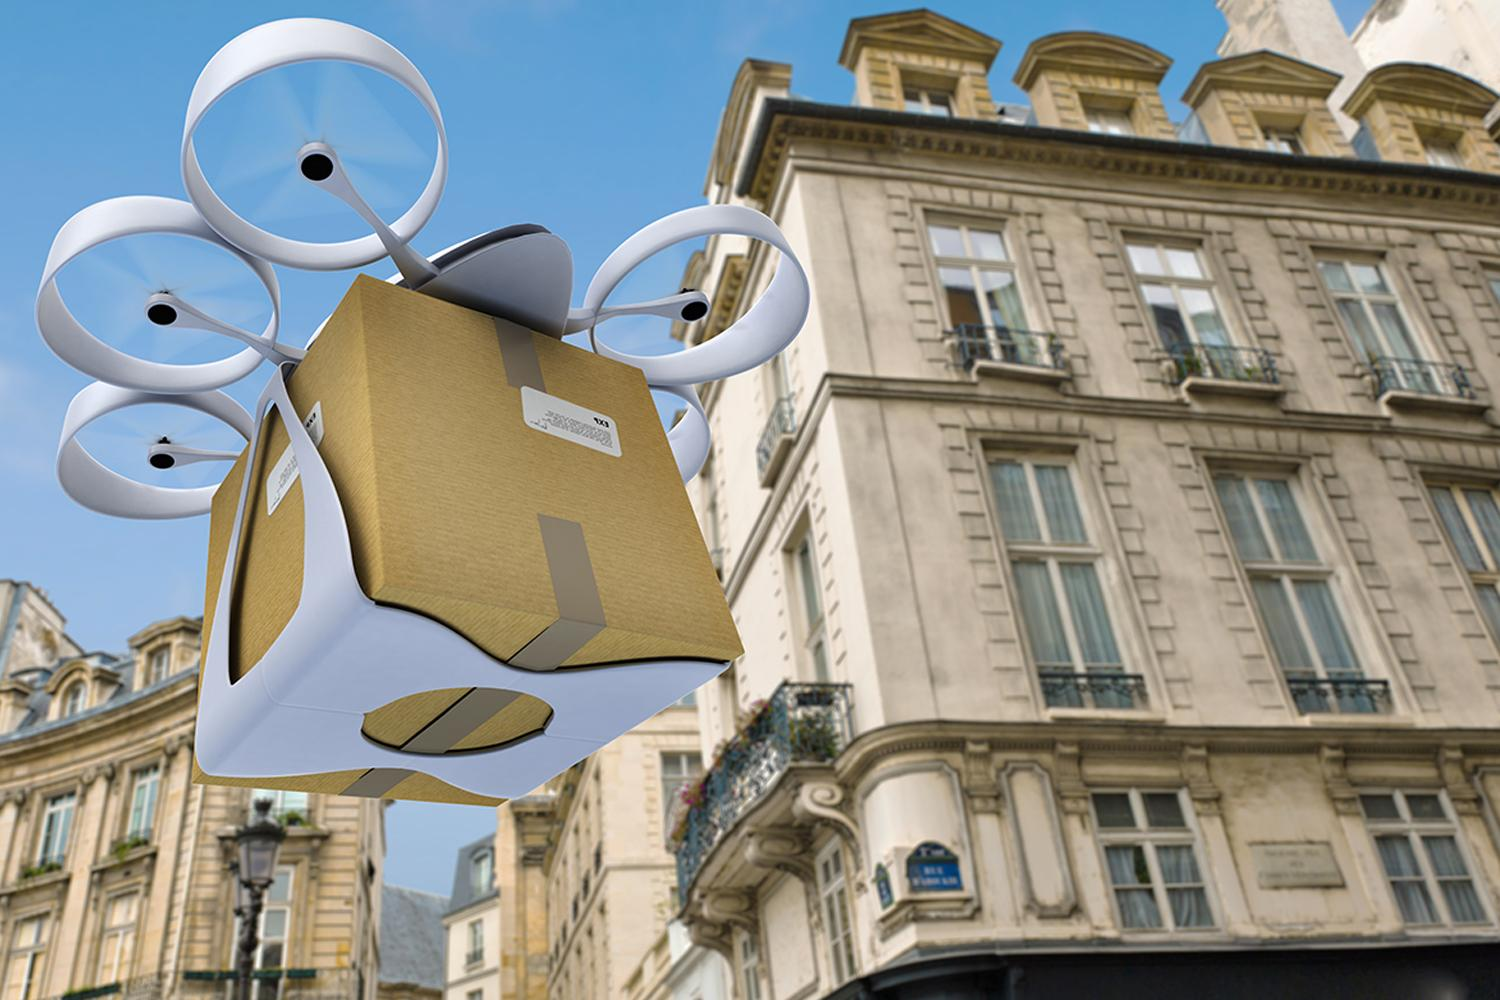 Experience 2030 Drone Delivery